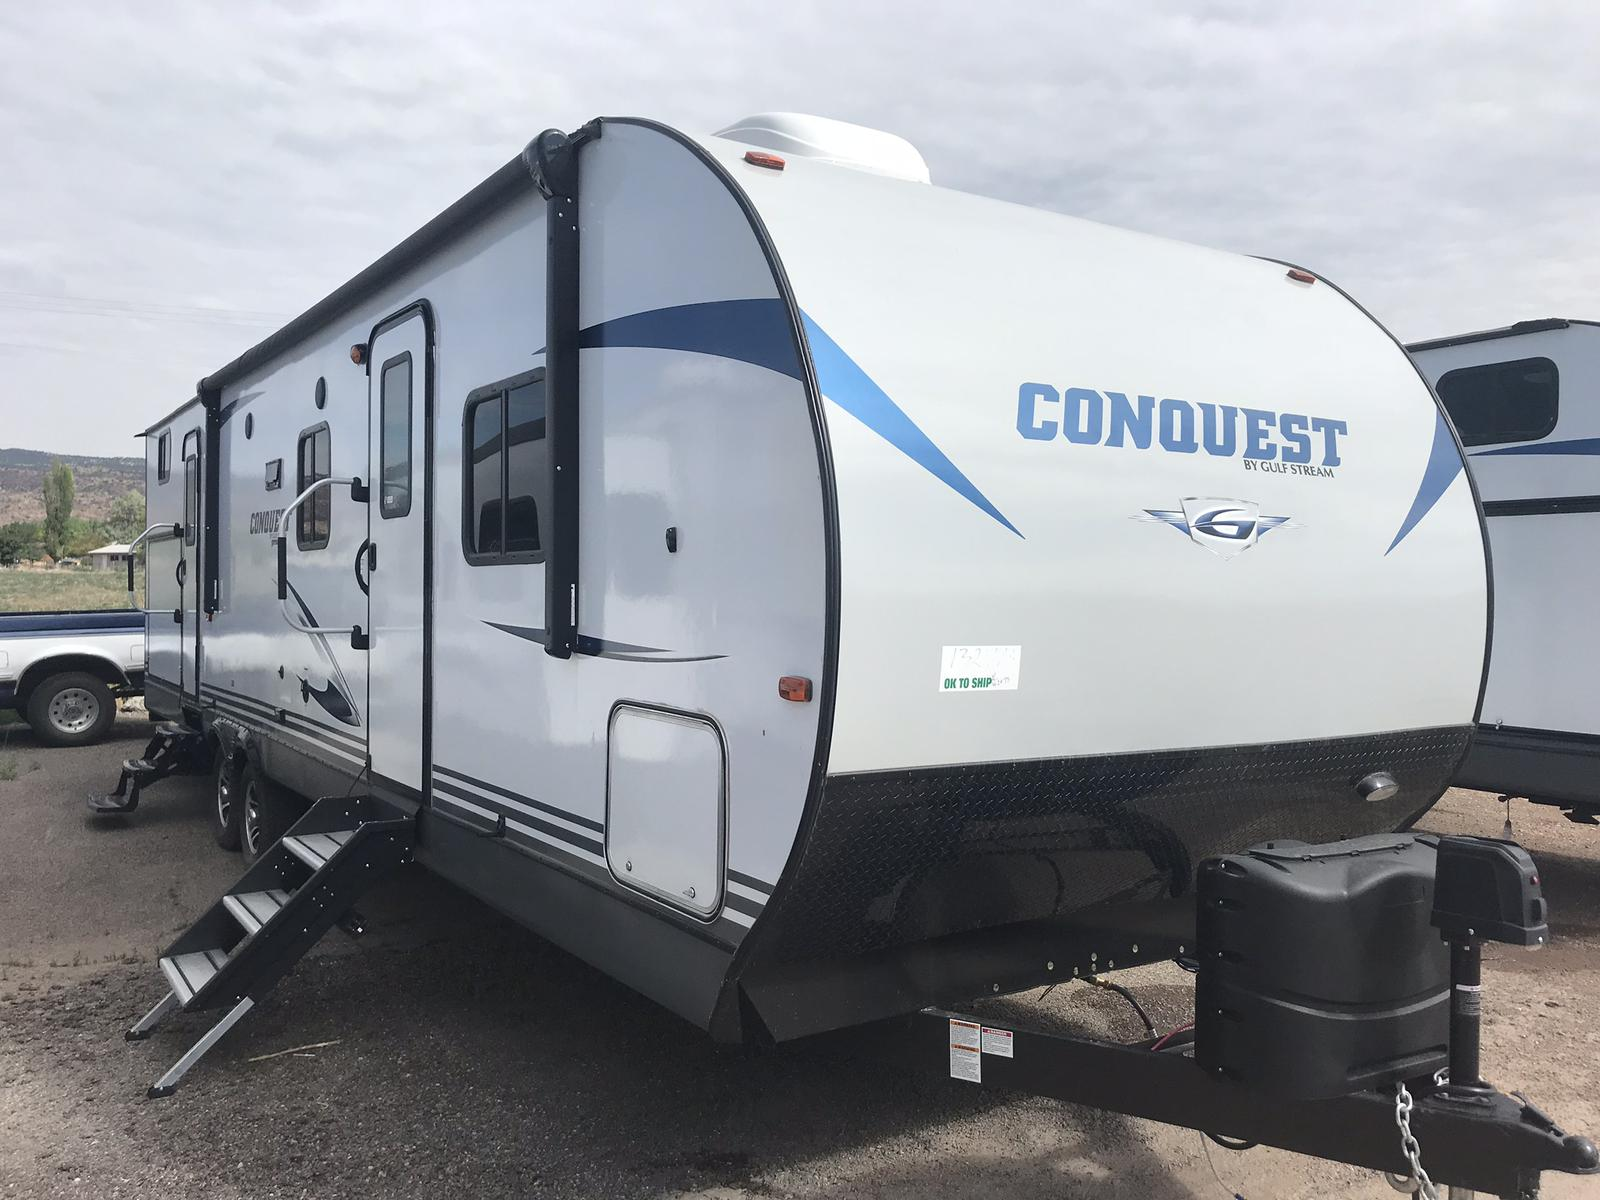 2019 conquest by gulf stream 323tbr